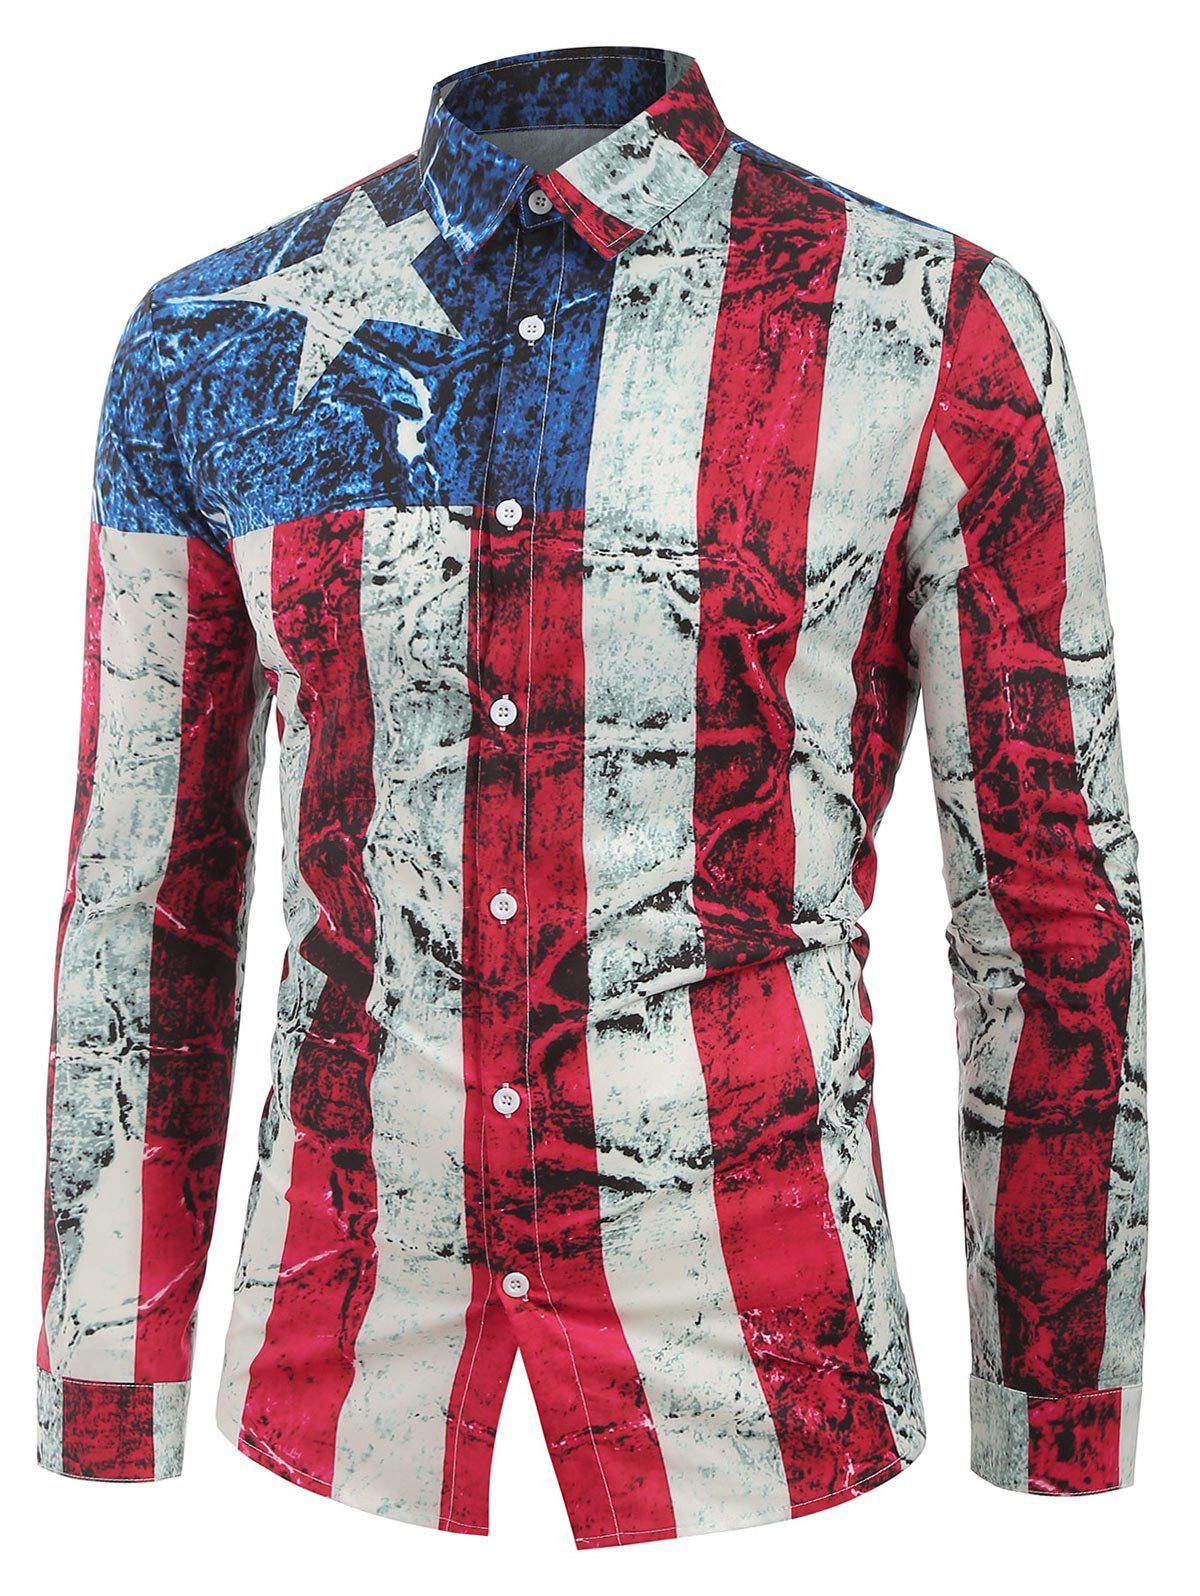 Long Sleeves Distressed American Flag Print Button Shirt - multicolor M